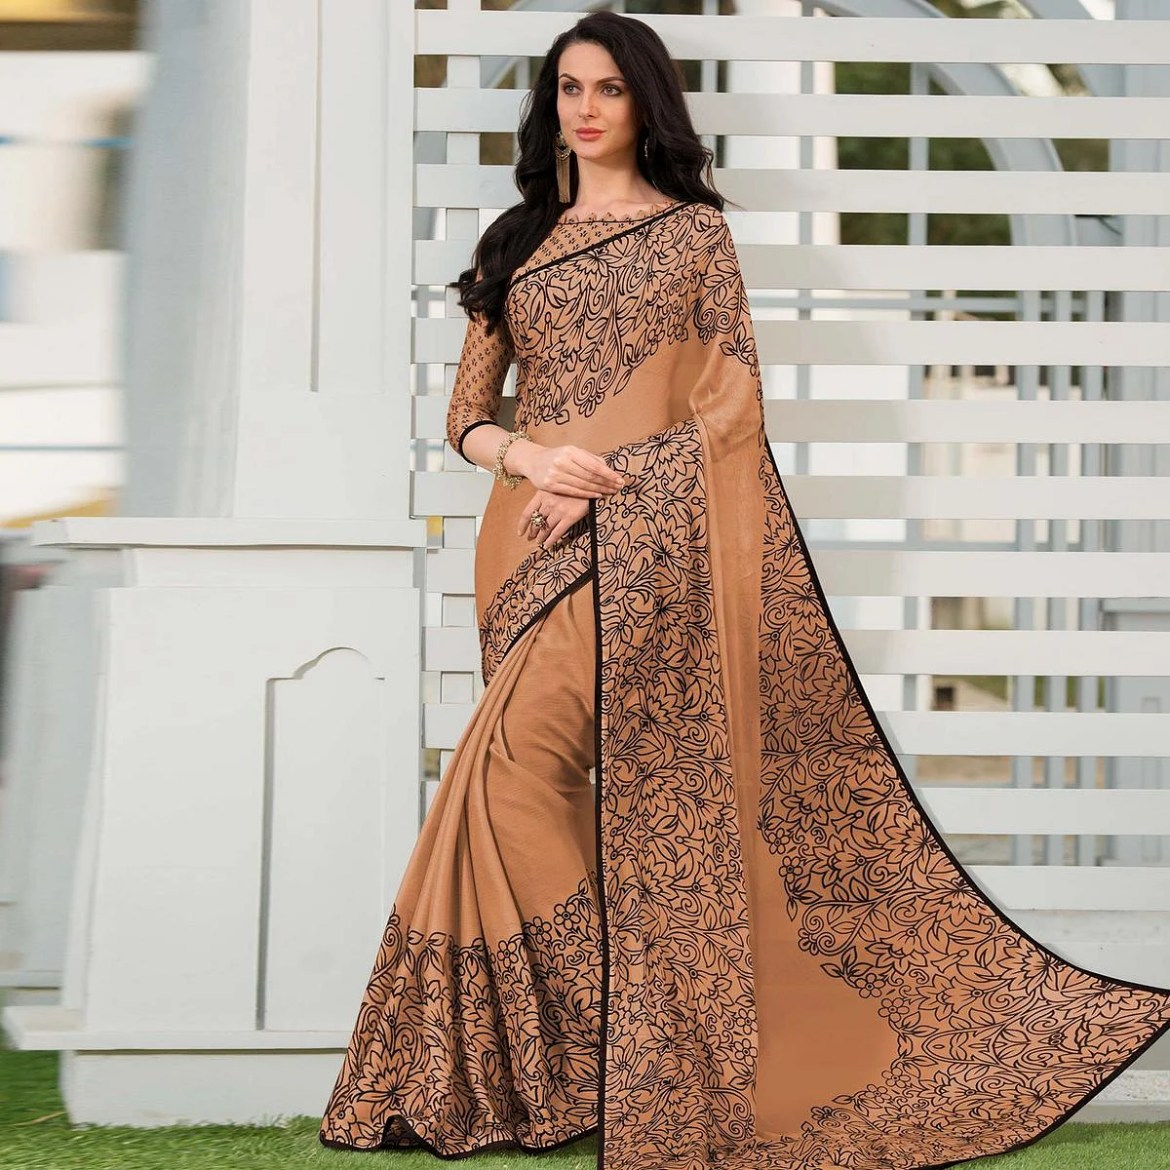 Exclusive Beige Colored Partywear Floral Printed Chiffon Saree